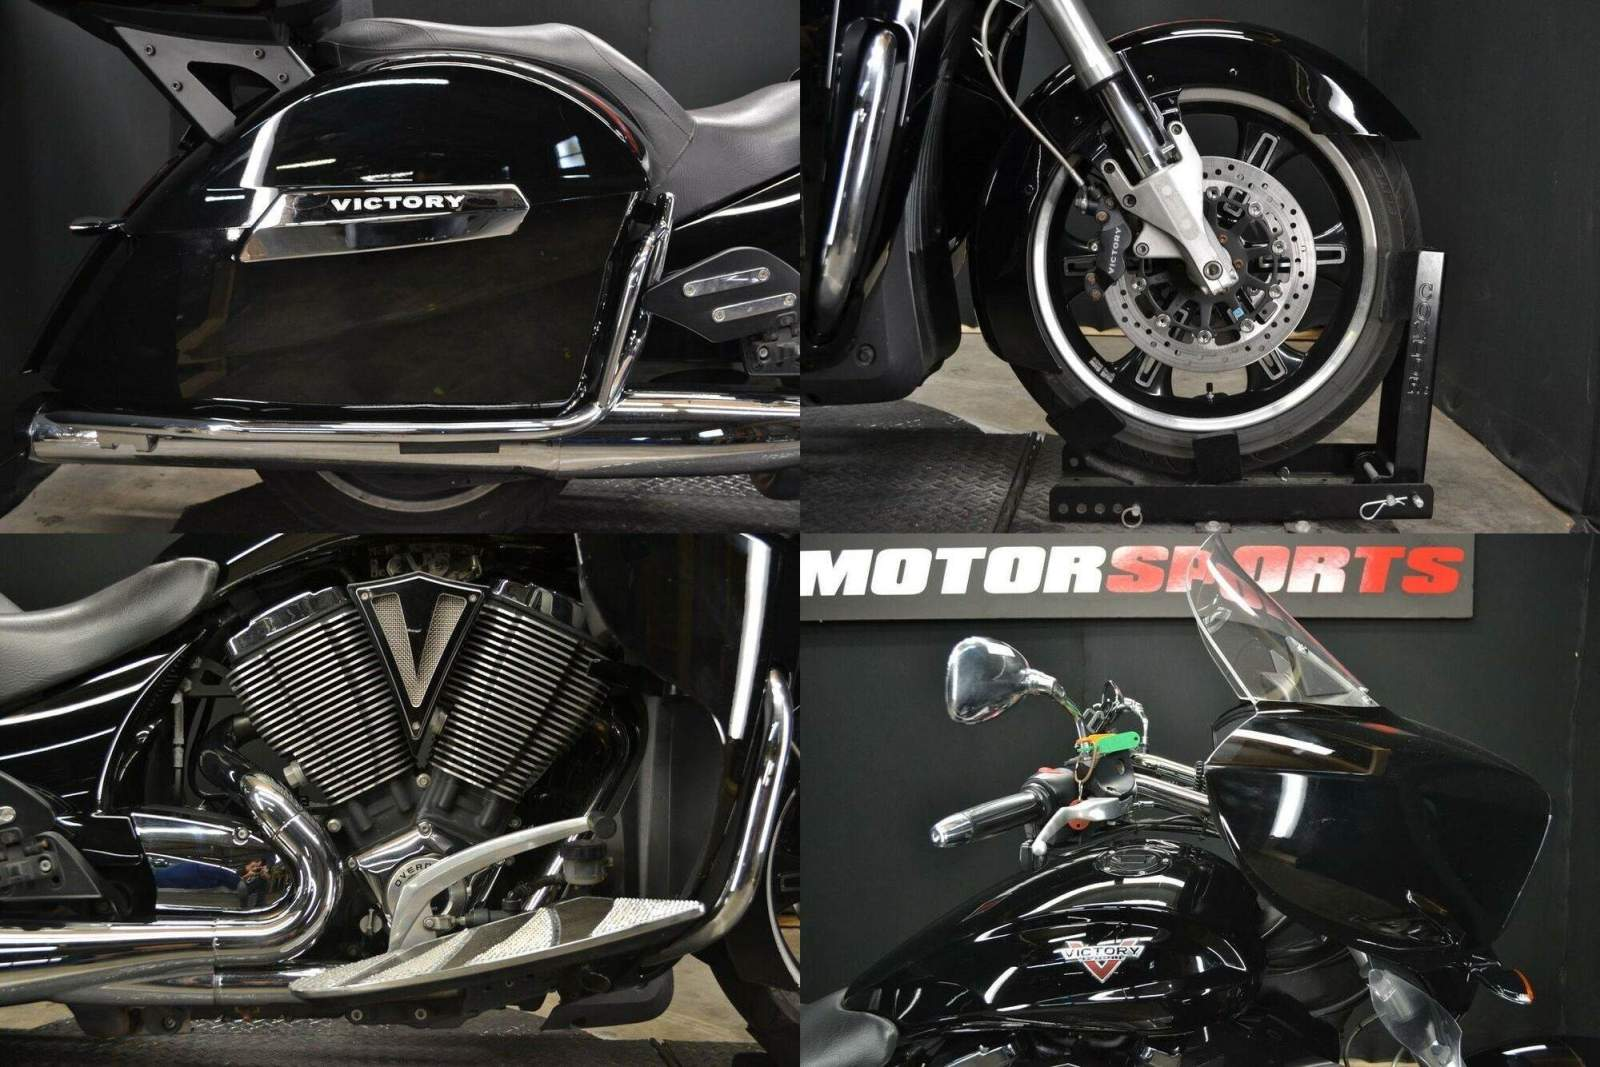 2016 Victory CROSS COUNTRY TOUR Black used for sale